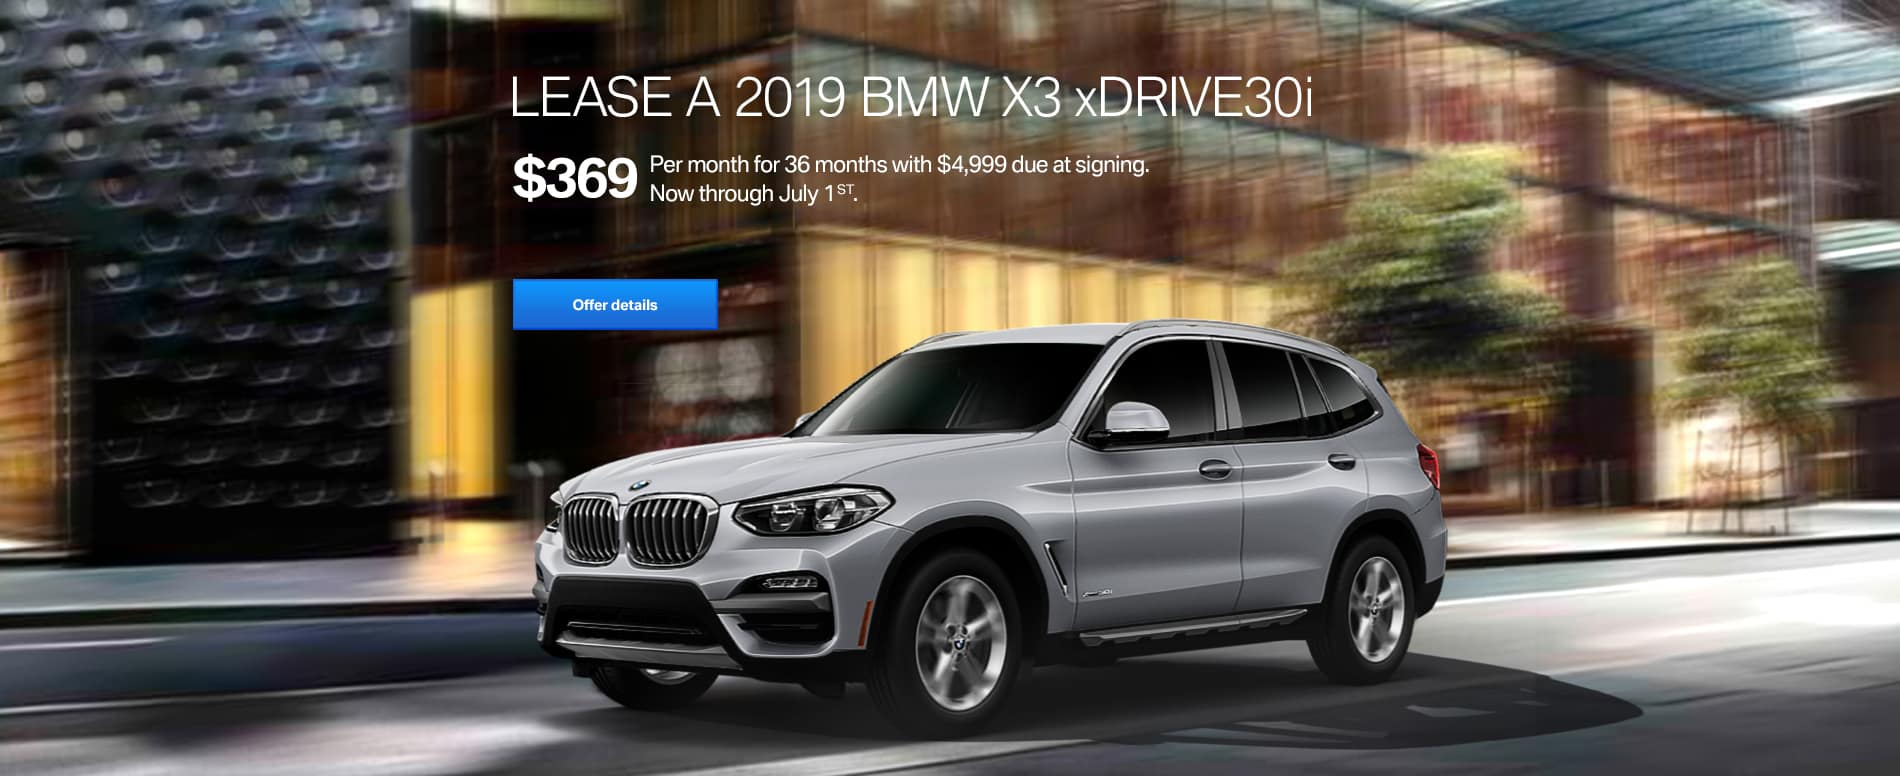 x3 xdrive30i summer offer